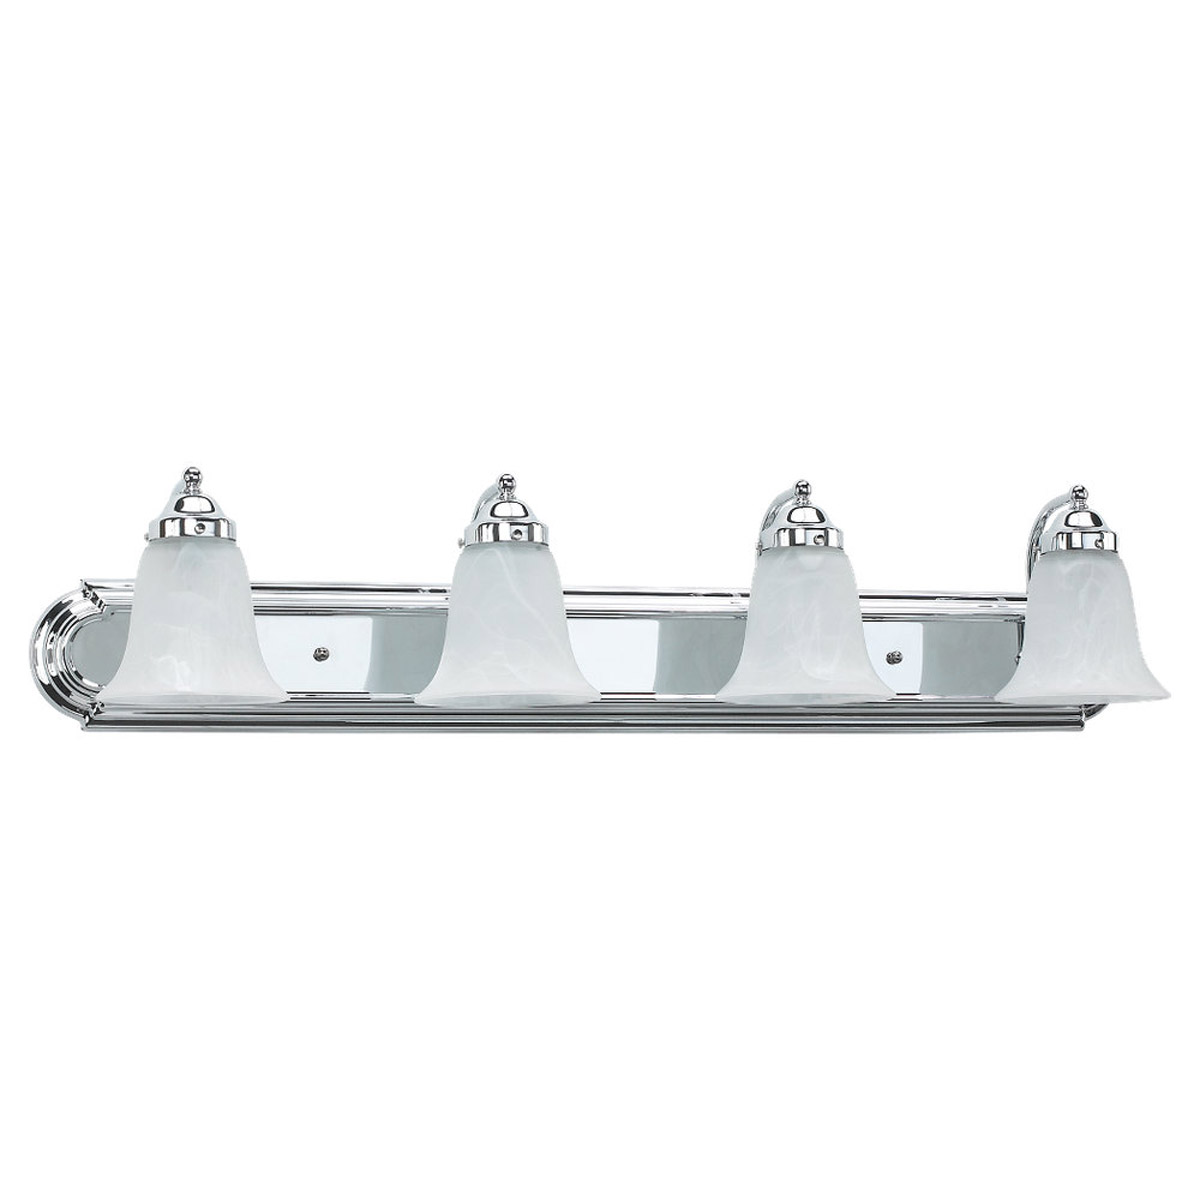 Sea Gull Lighting Astoria 4 Light Bath Vanity in Chrome 49292BLE-05 photo